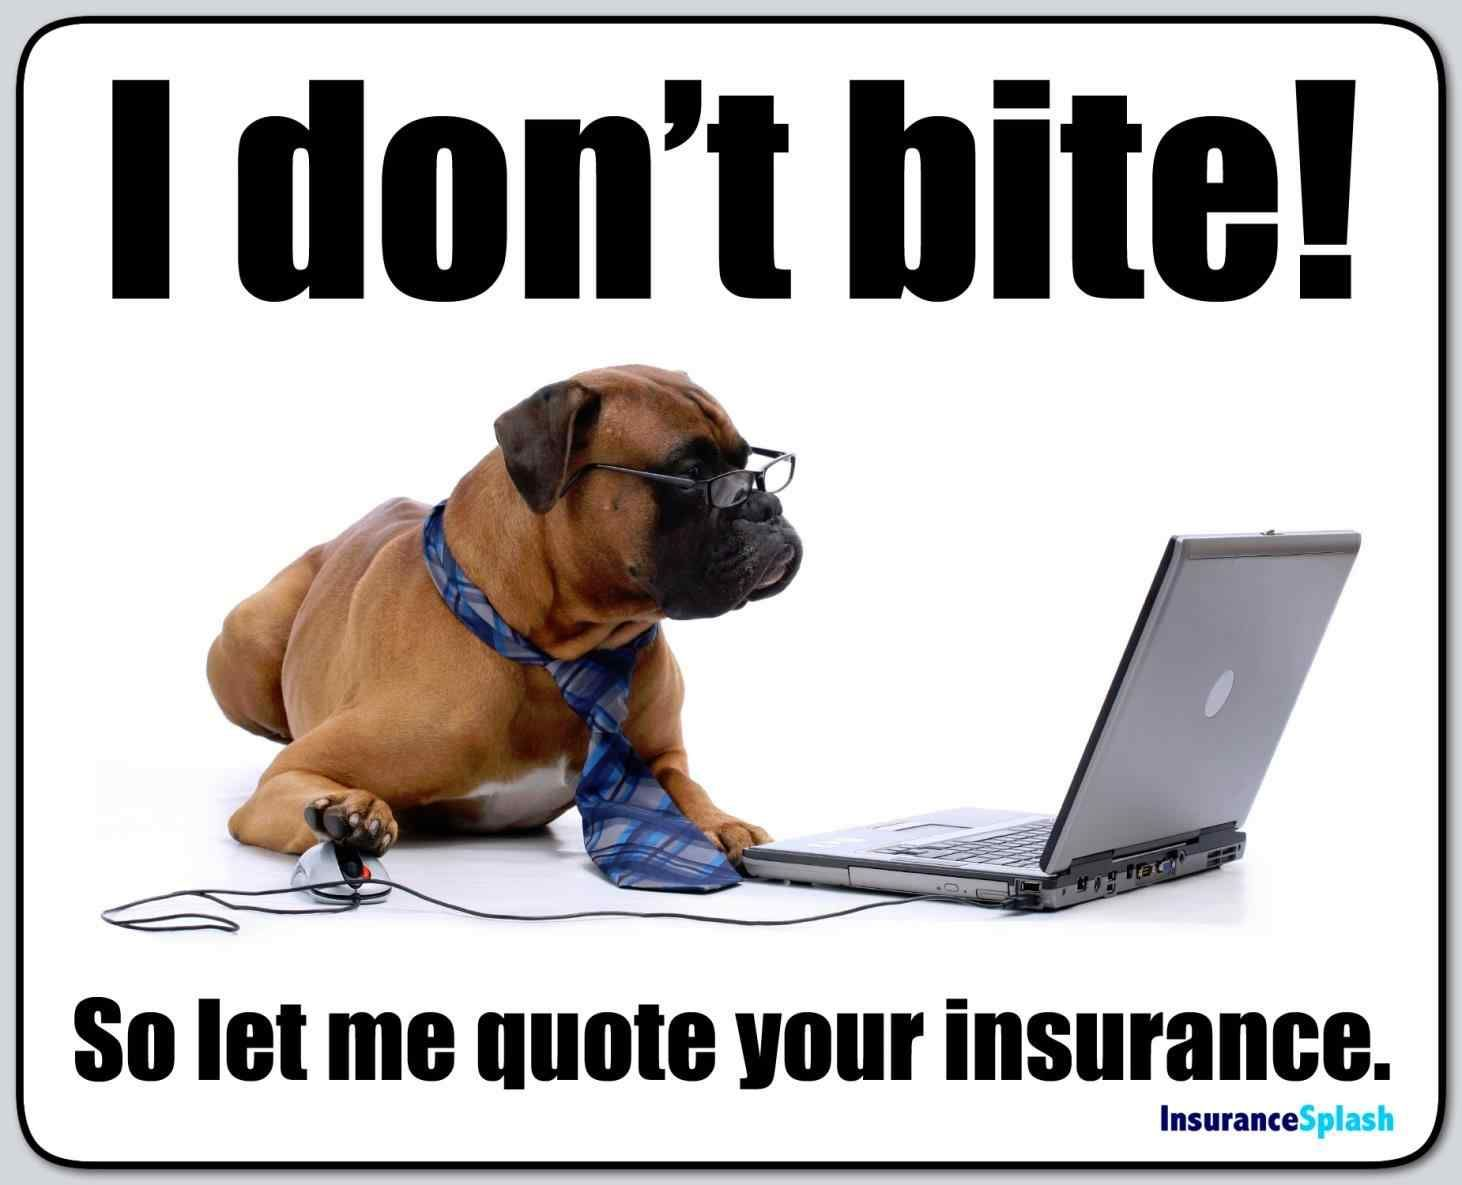 Did You Know That Insurance Companies Provide Quoting Tools